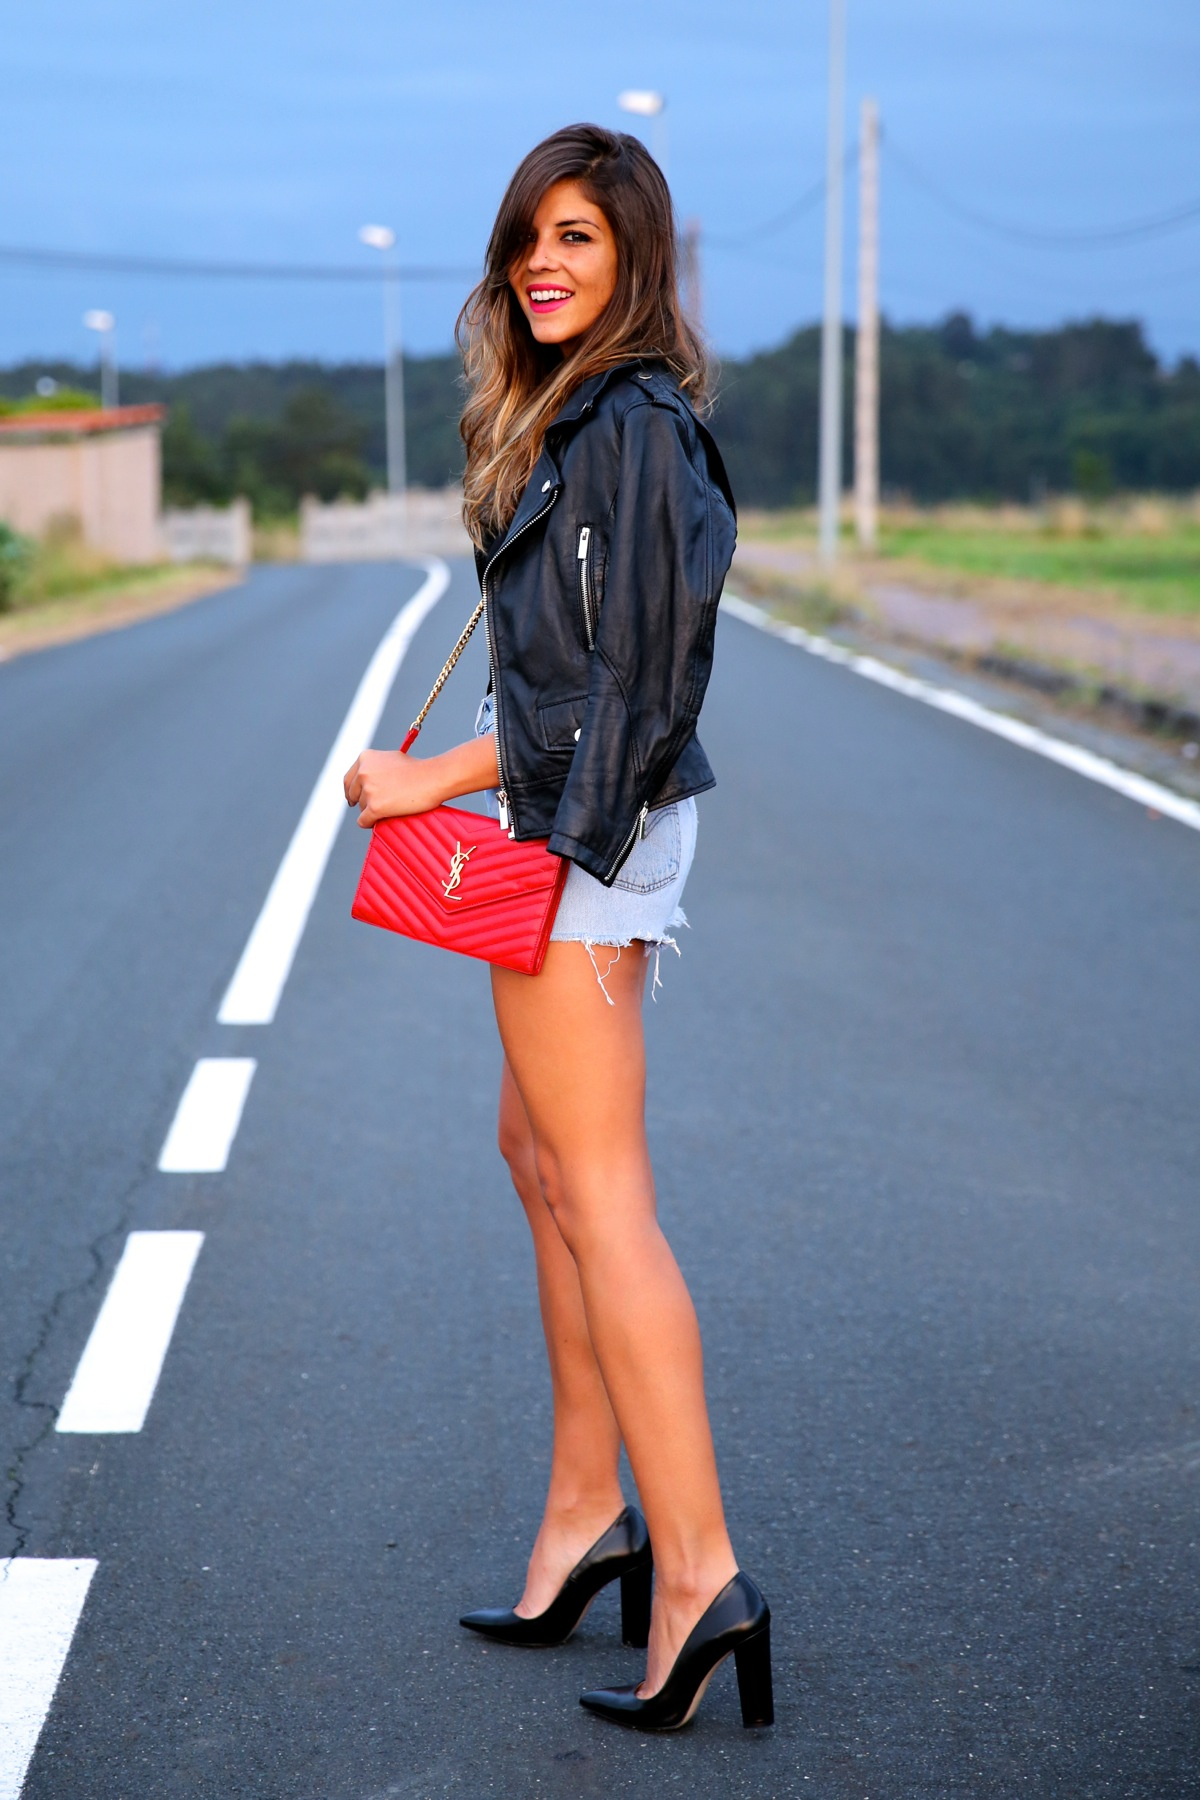 trendy_taste-look-outfit-street_style-ootd-blog-blogger-fashion_spain-moda_españa-denim_shorts-shorts_vaqueros-chaqueta_cuero-leather_jacket-ysl-saint_laurent-12